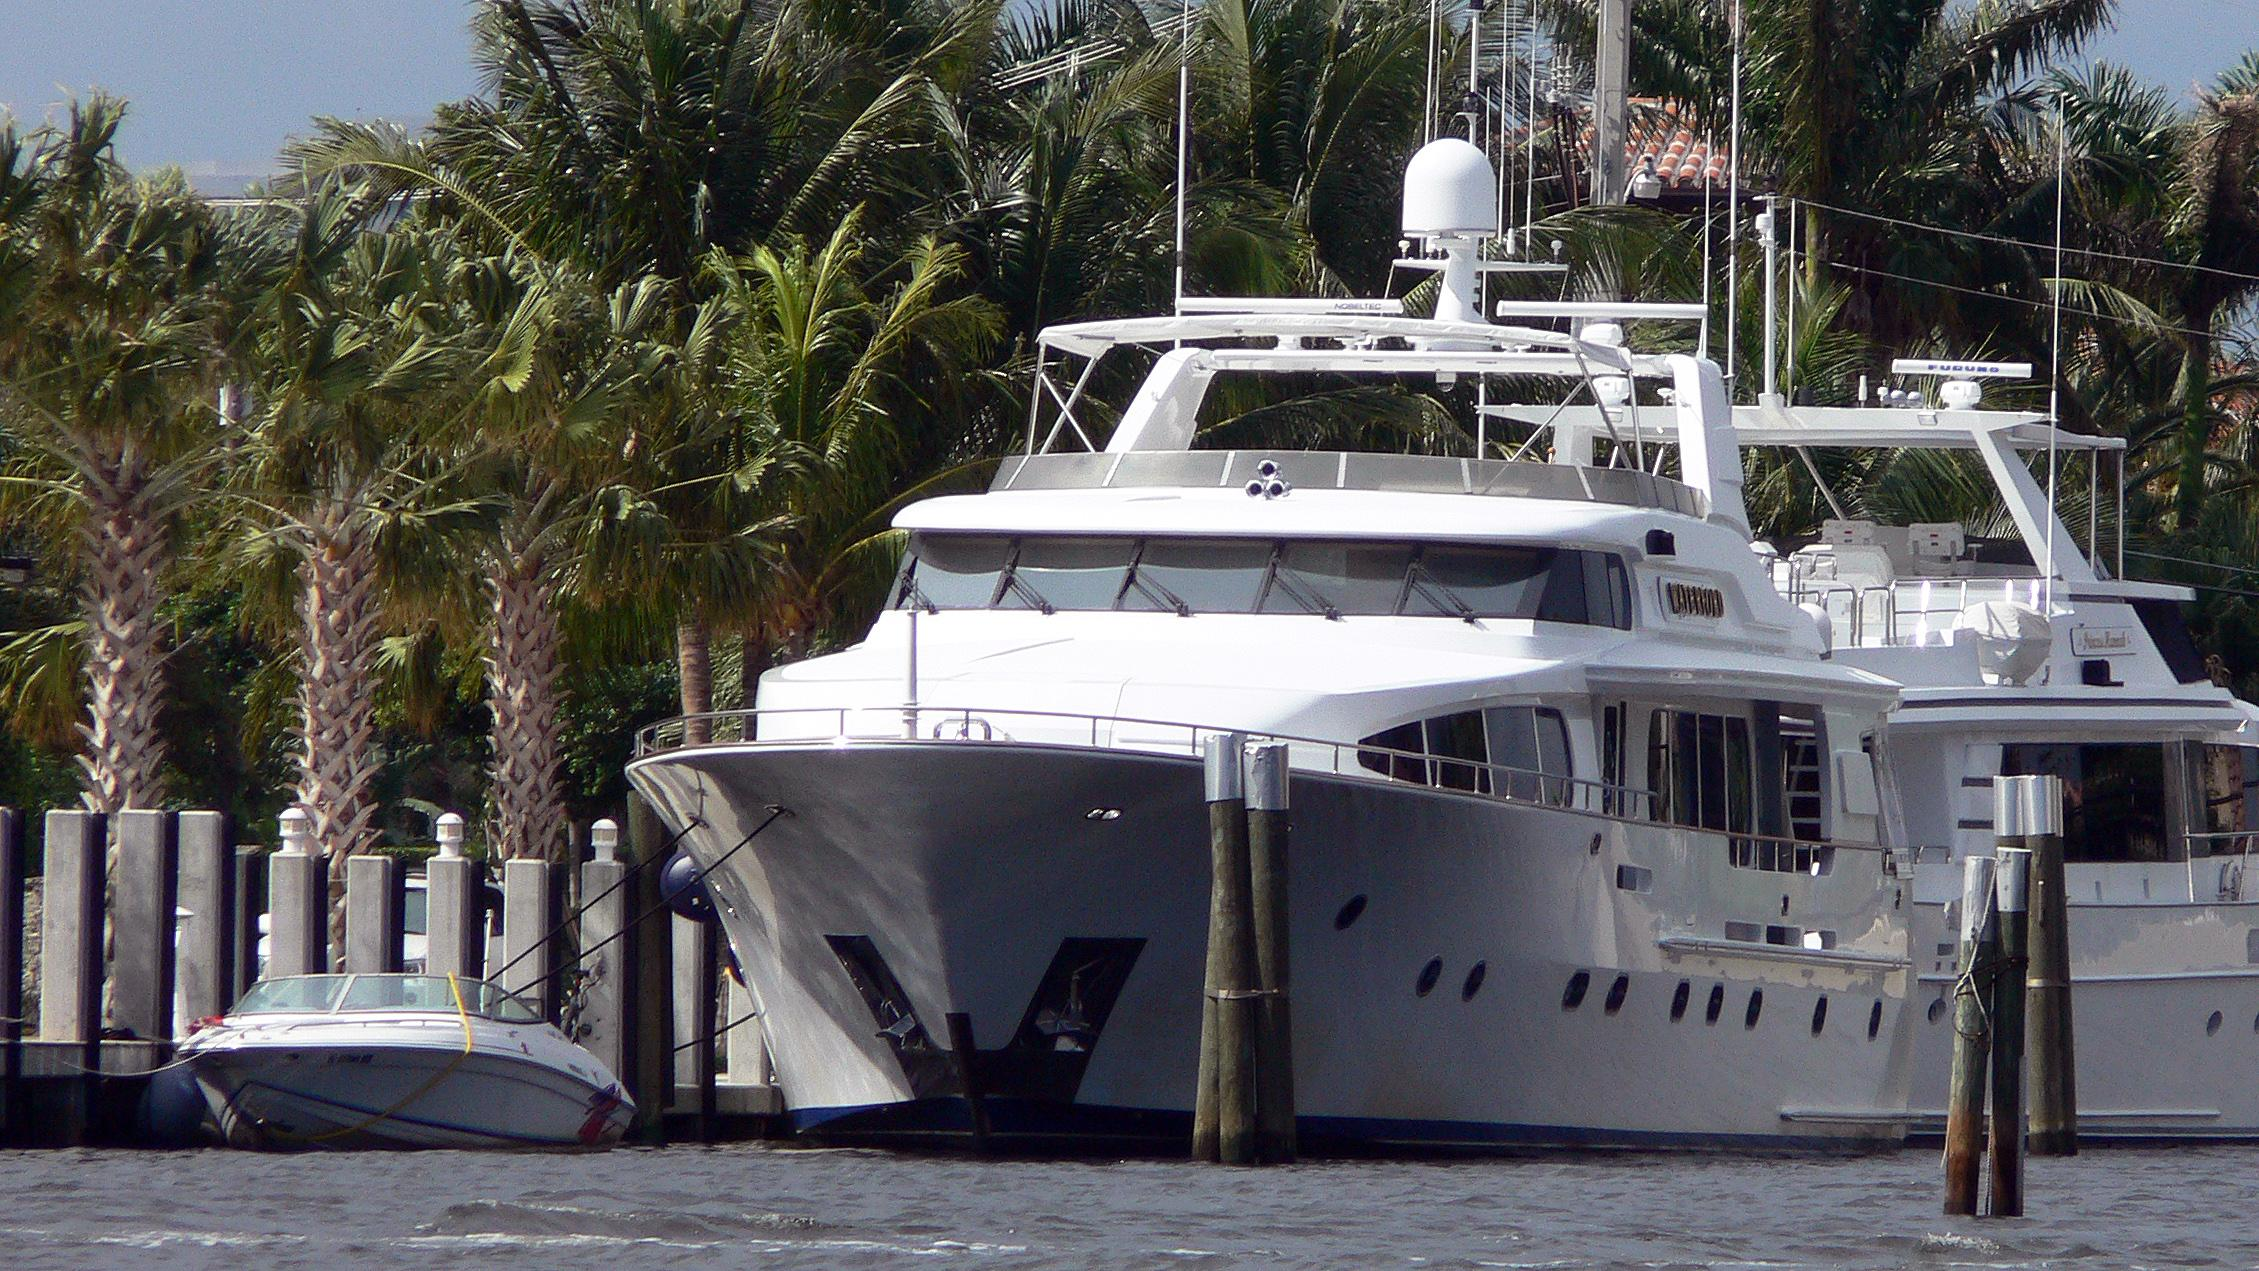 waterford=motor-yacht-sovereign-100-2001-31m-front